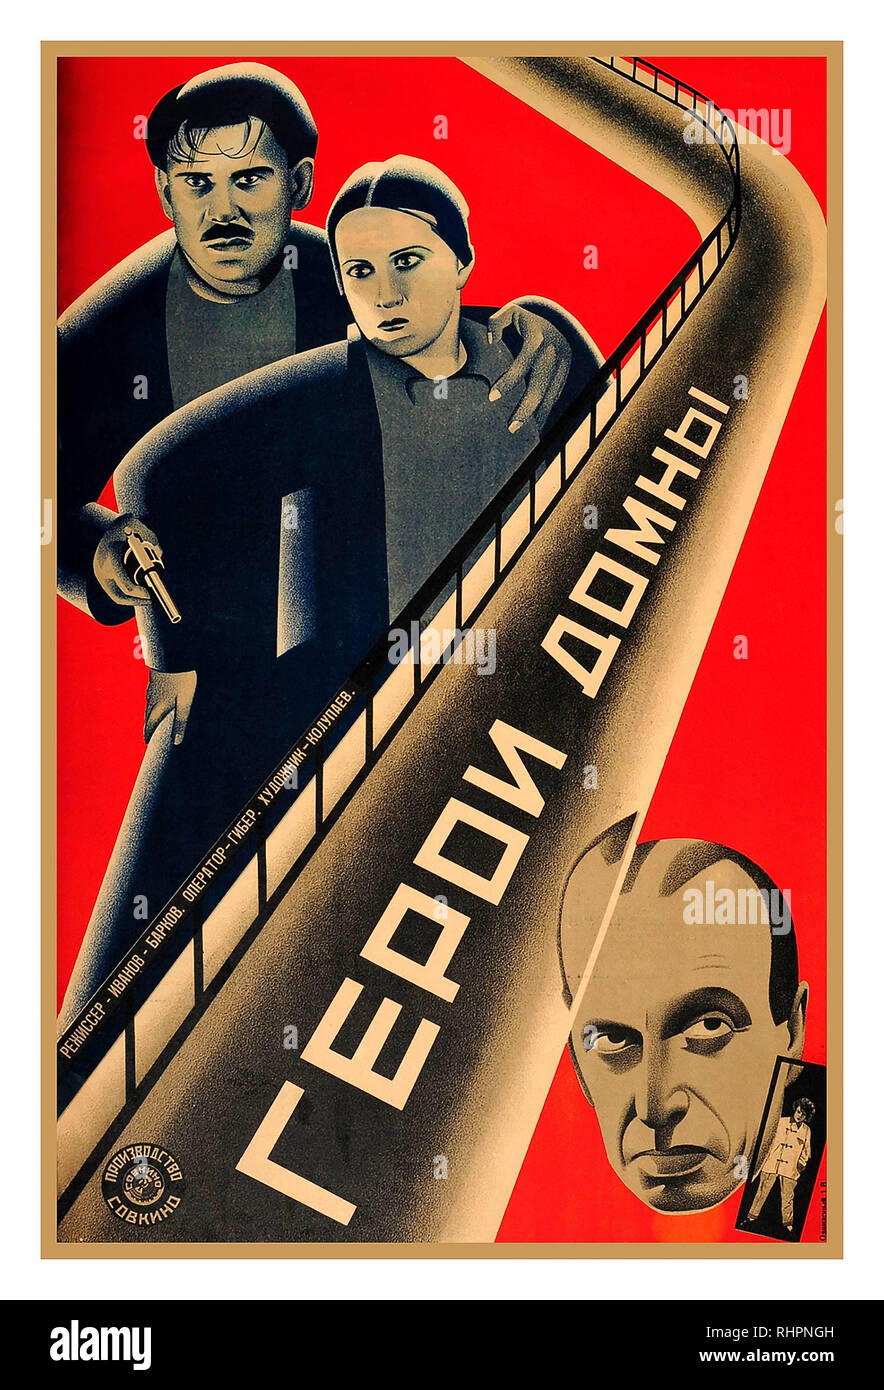 Original vintage film poster for a Soviet movie Heroes of Furnace - produced by SovKino. Constructive design featuring a man holding a gun standing behind a lady above the title in stylized lettering with the face of a man below and a lady standing in a doorway in dark tones against a red background. Artwork attributed to the notable Soviet artists the Stenberg Brothers (Vladimir 1899-1982; Georgii 1900-1933). - Stock Image